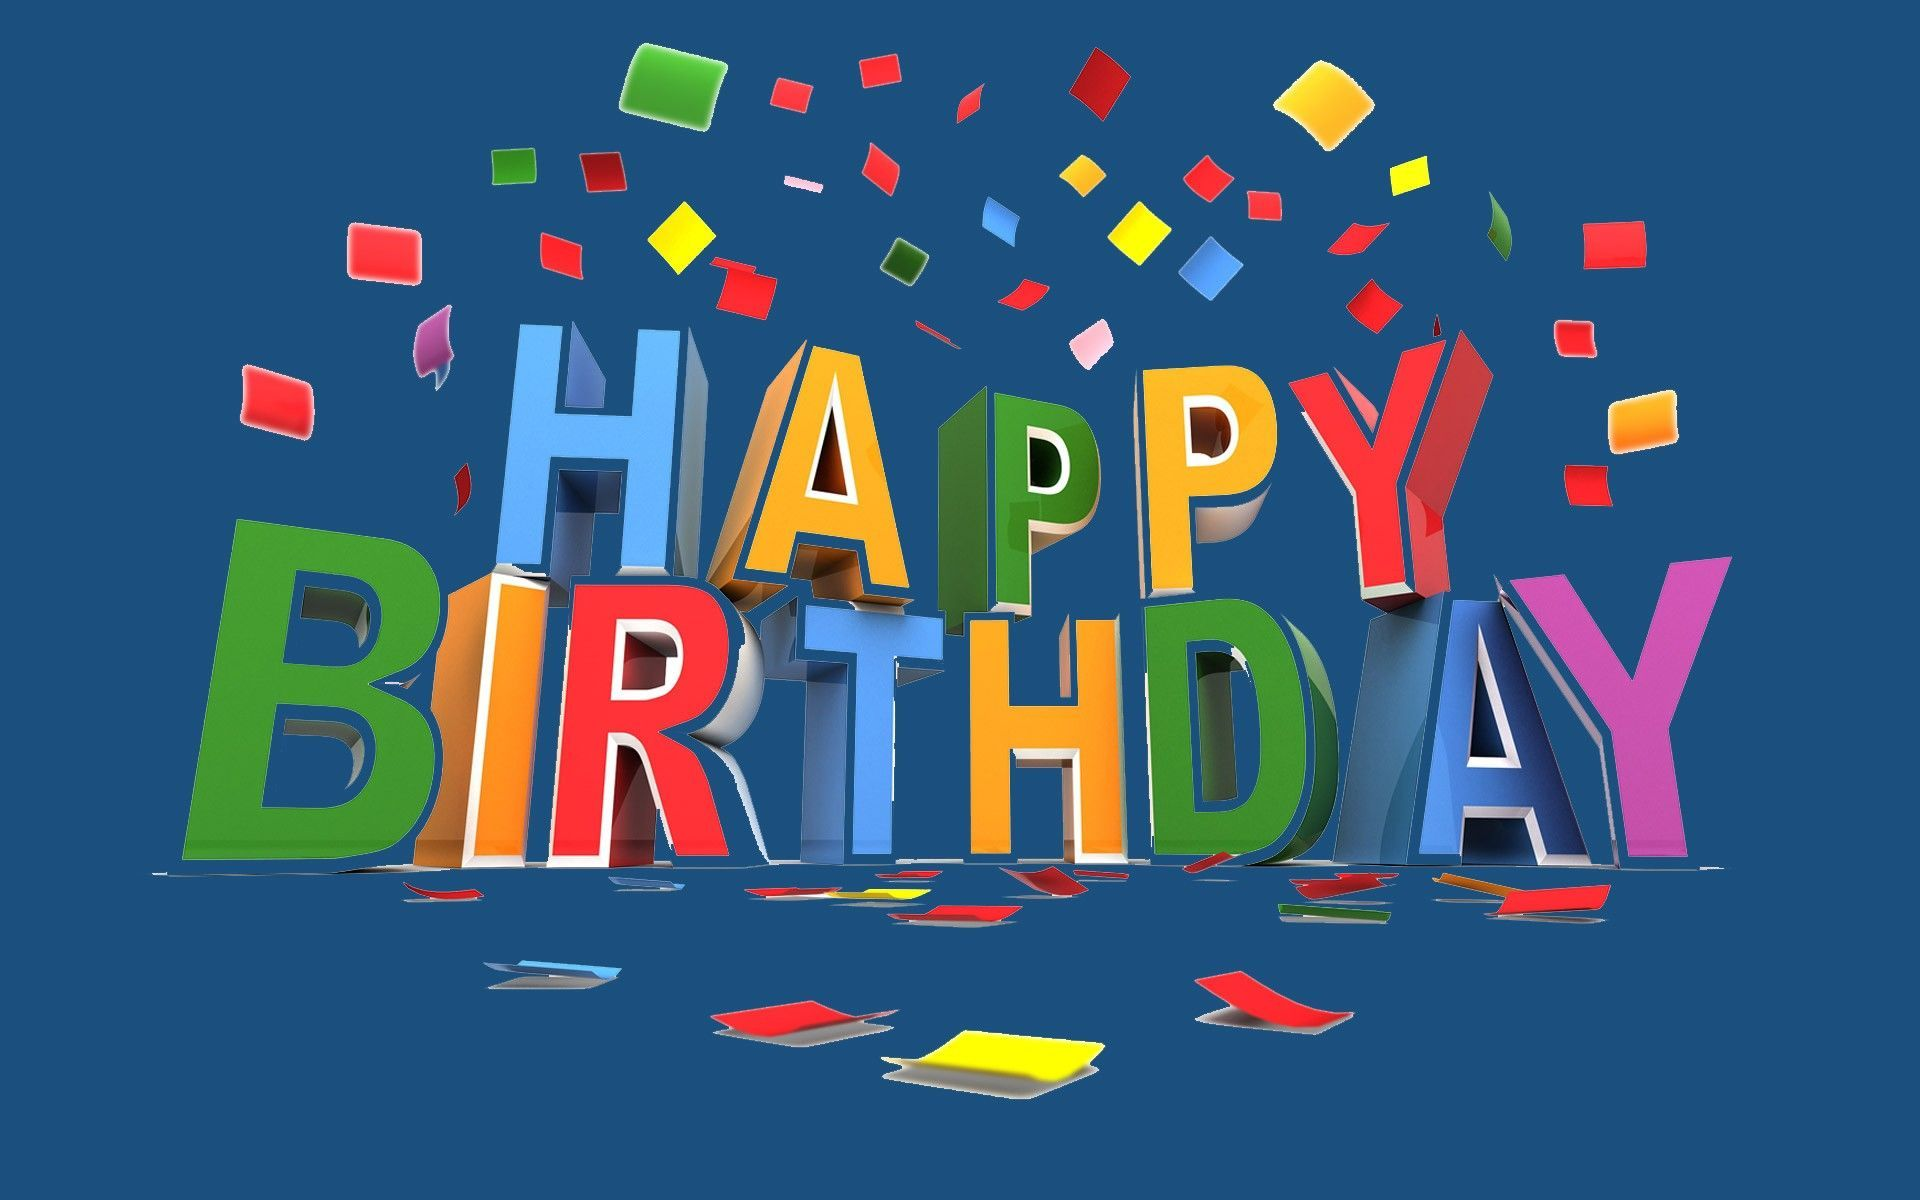 Happy Birthday Wishes Wallpaper Free Download Places to Visit